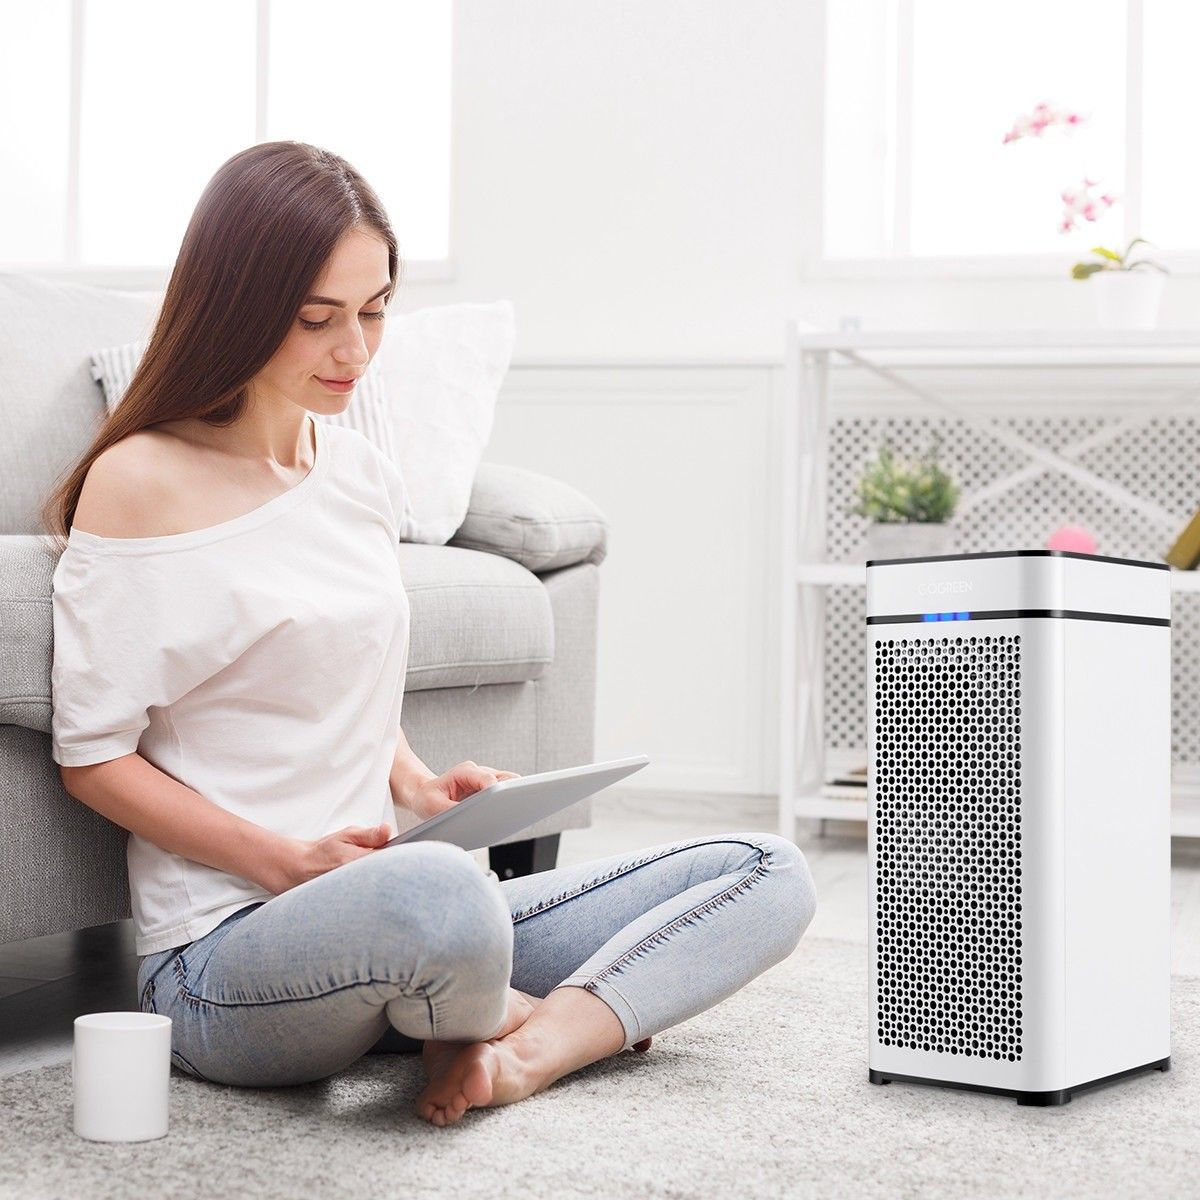 430 sq.ft True HEPA Filter Activated Carbon Air Purifier